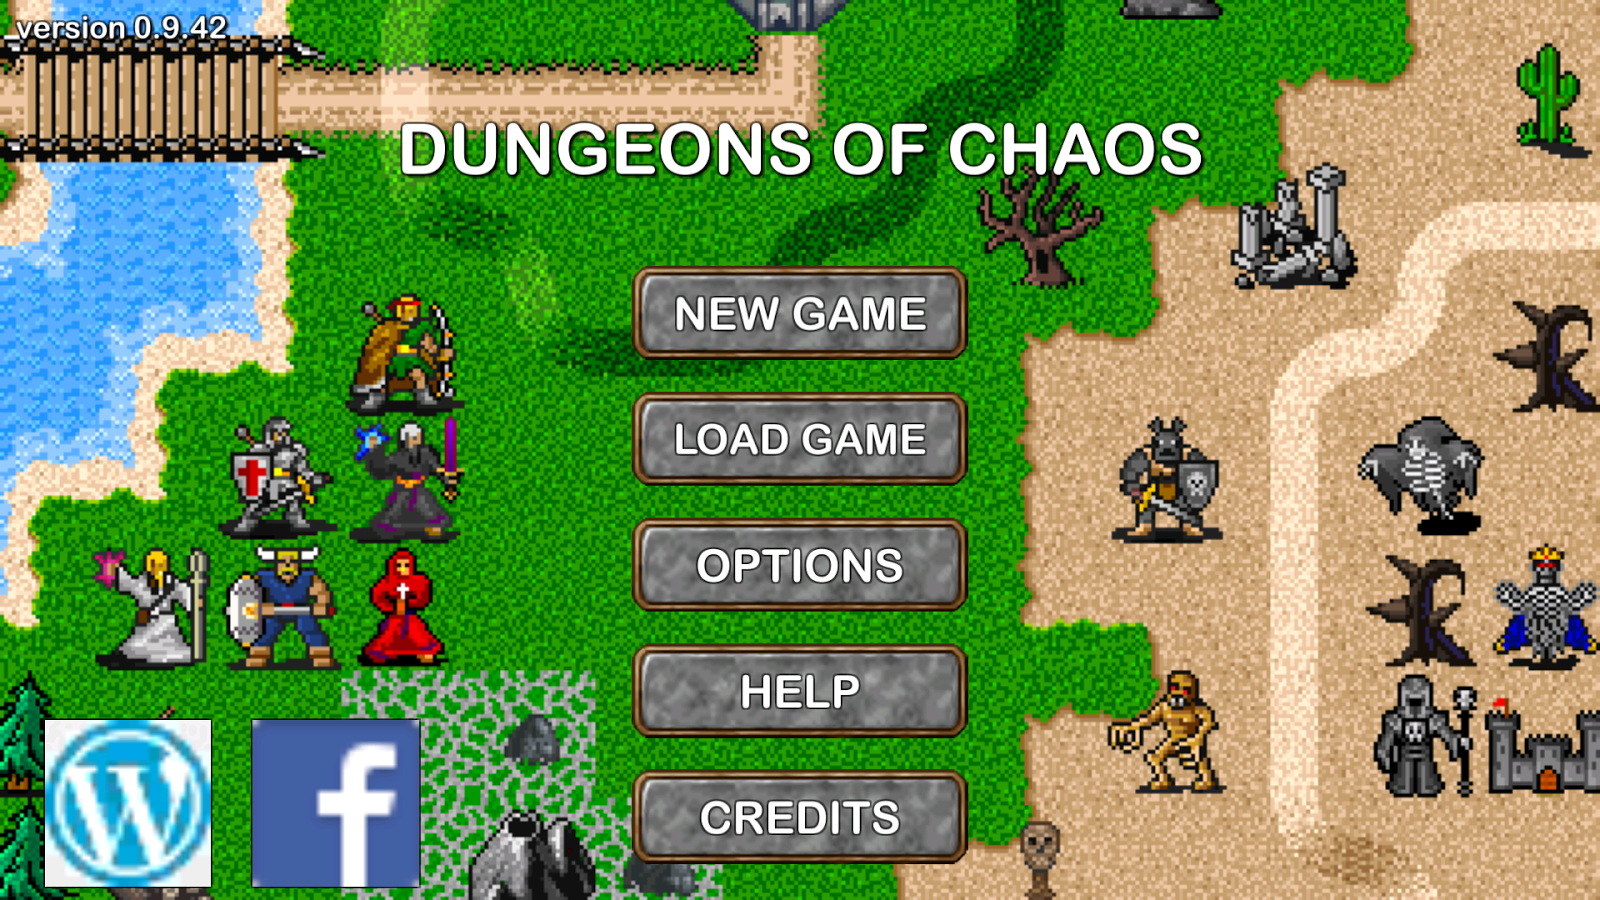 Dungeons of Chaos Apk